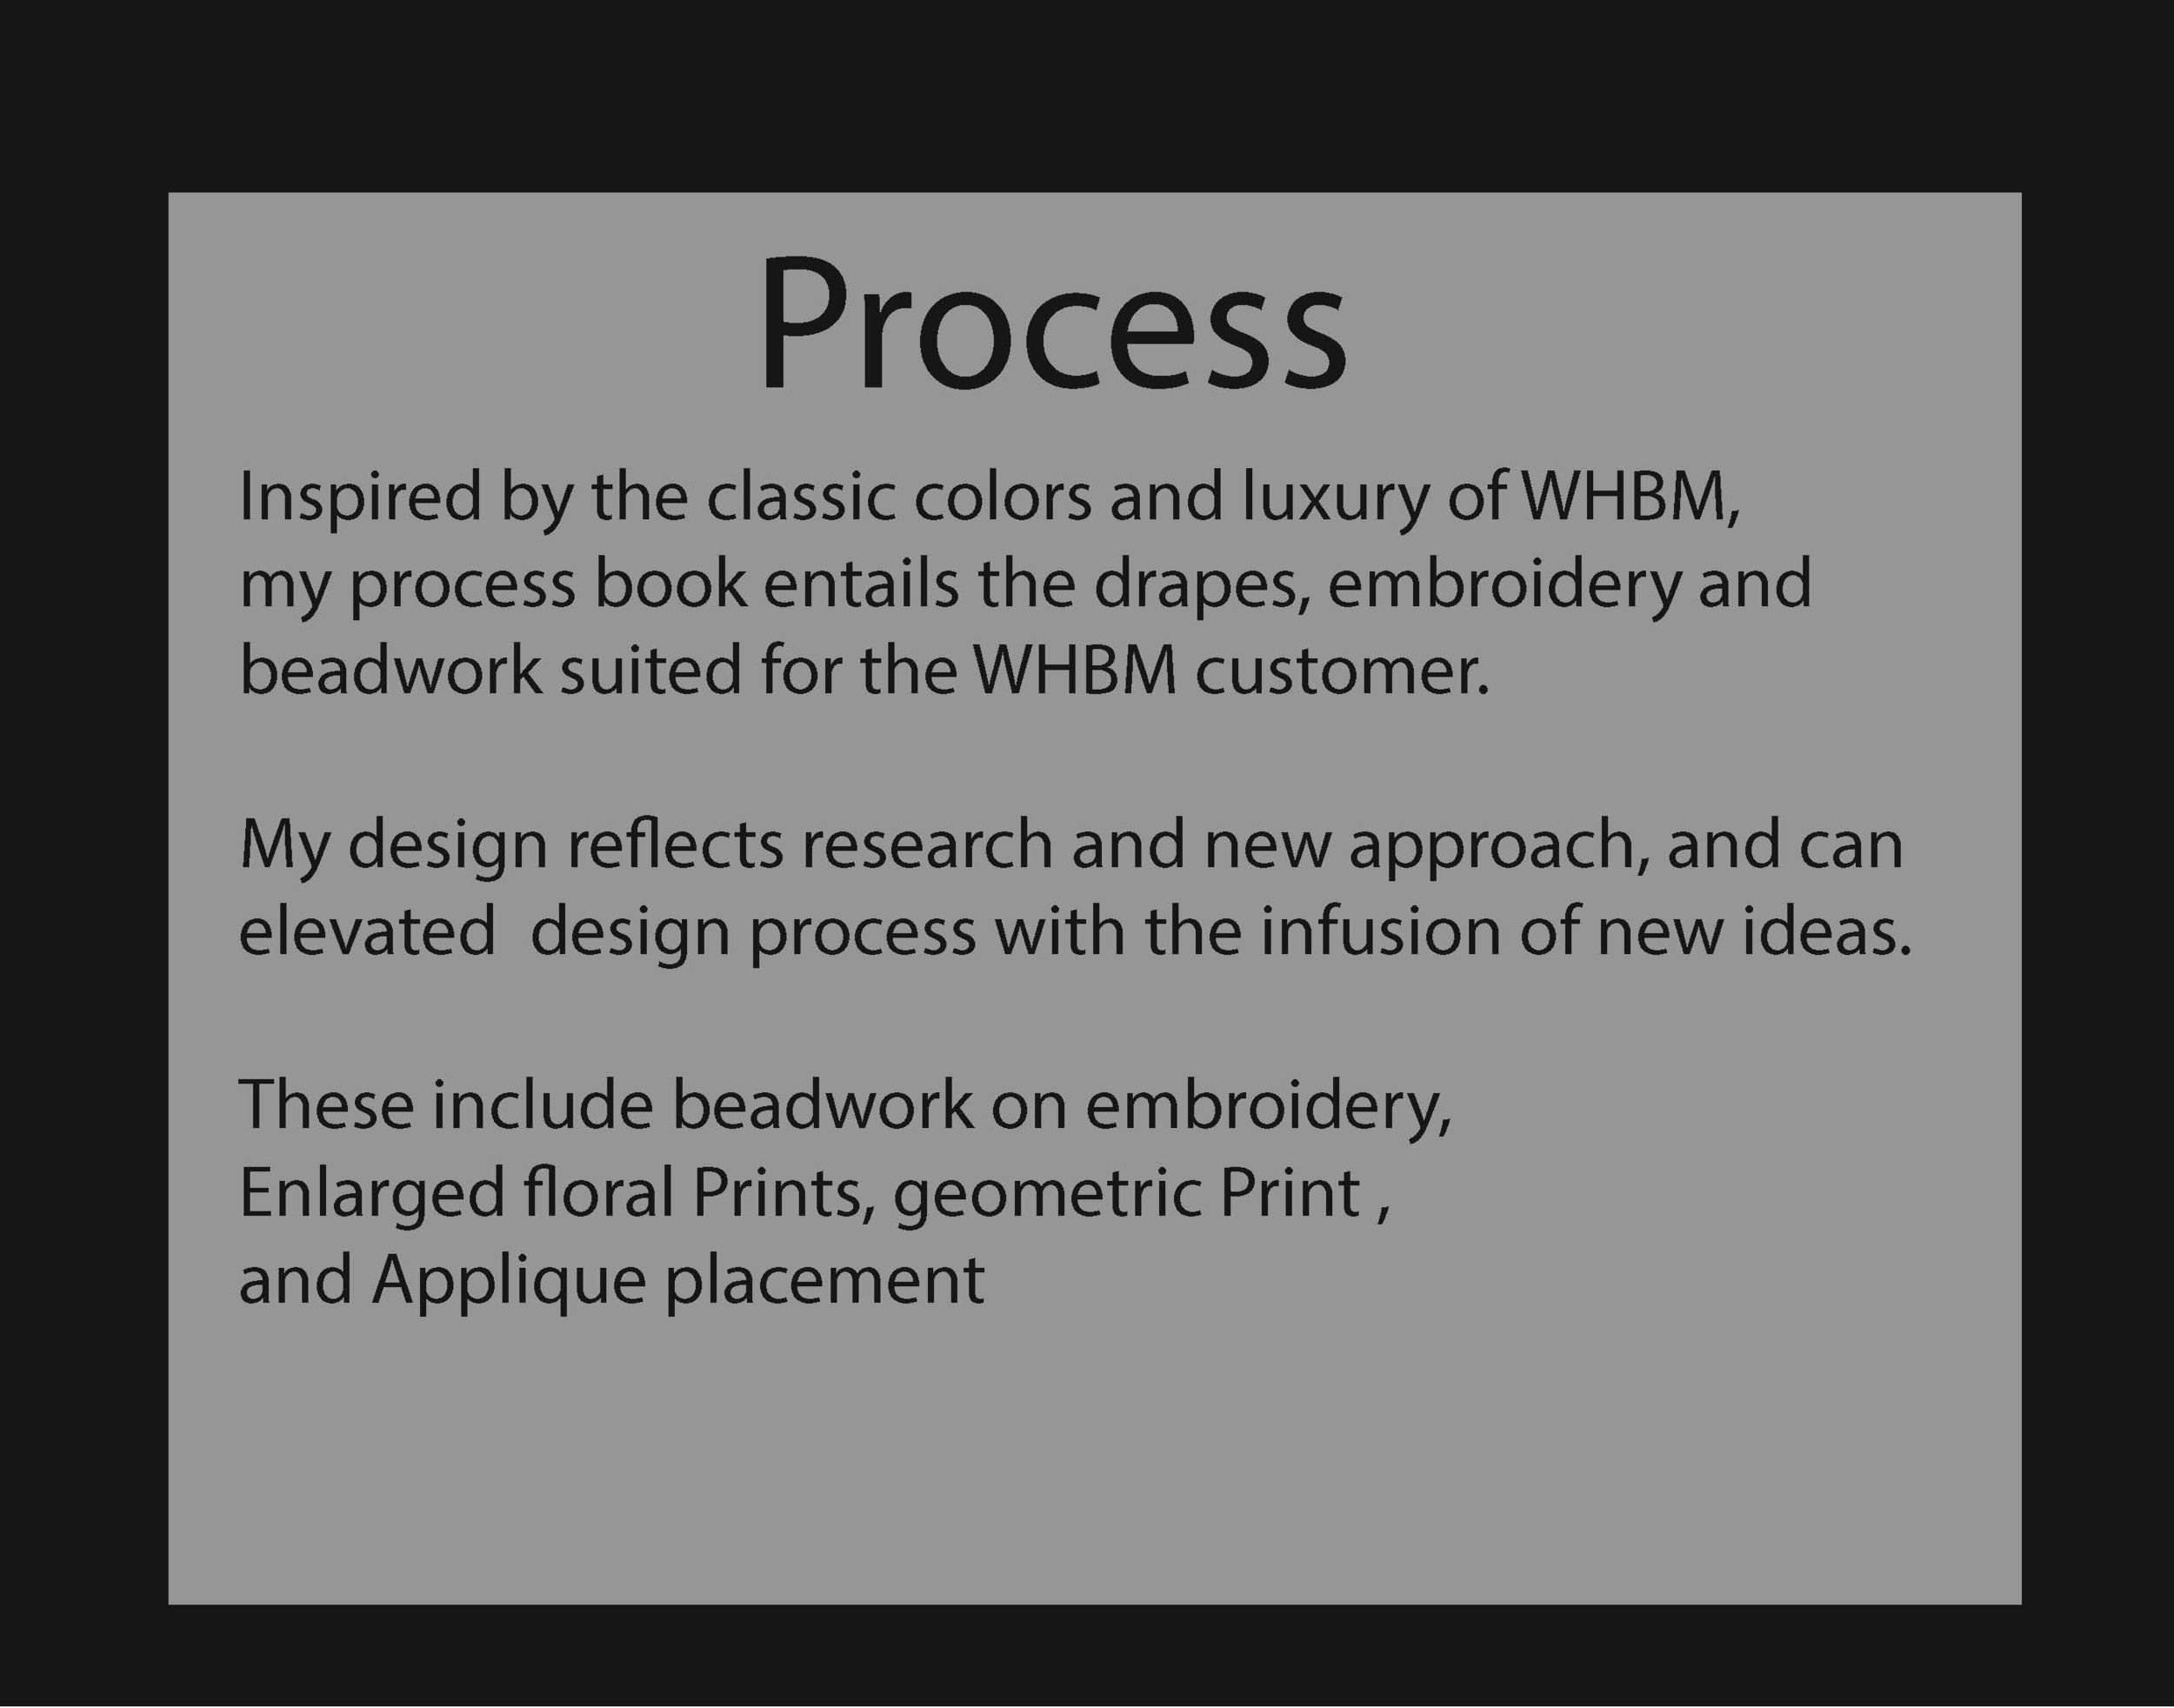 Process book whbm copy_Page_7.jpg